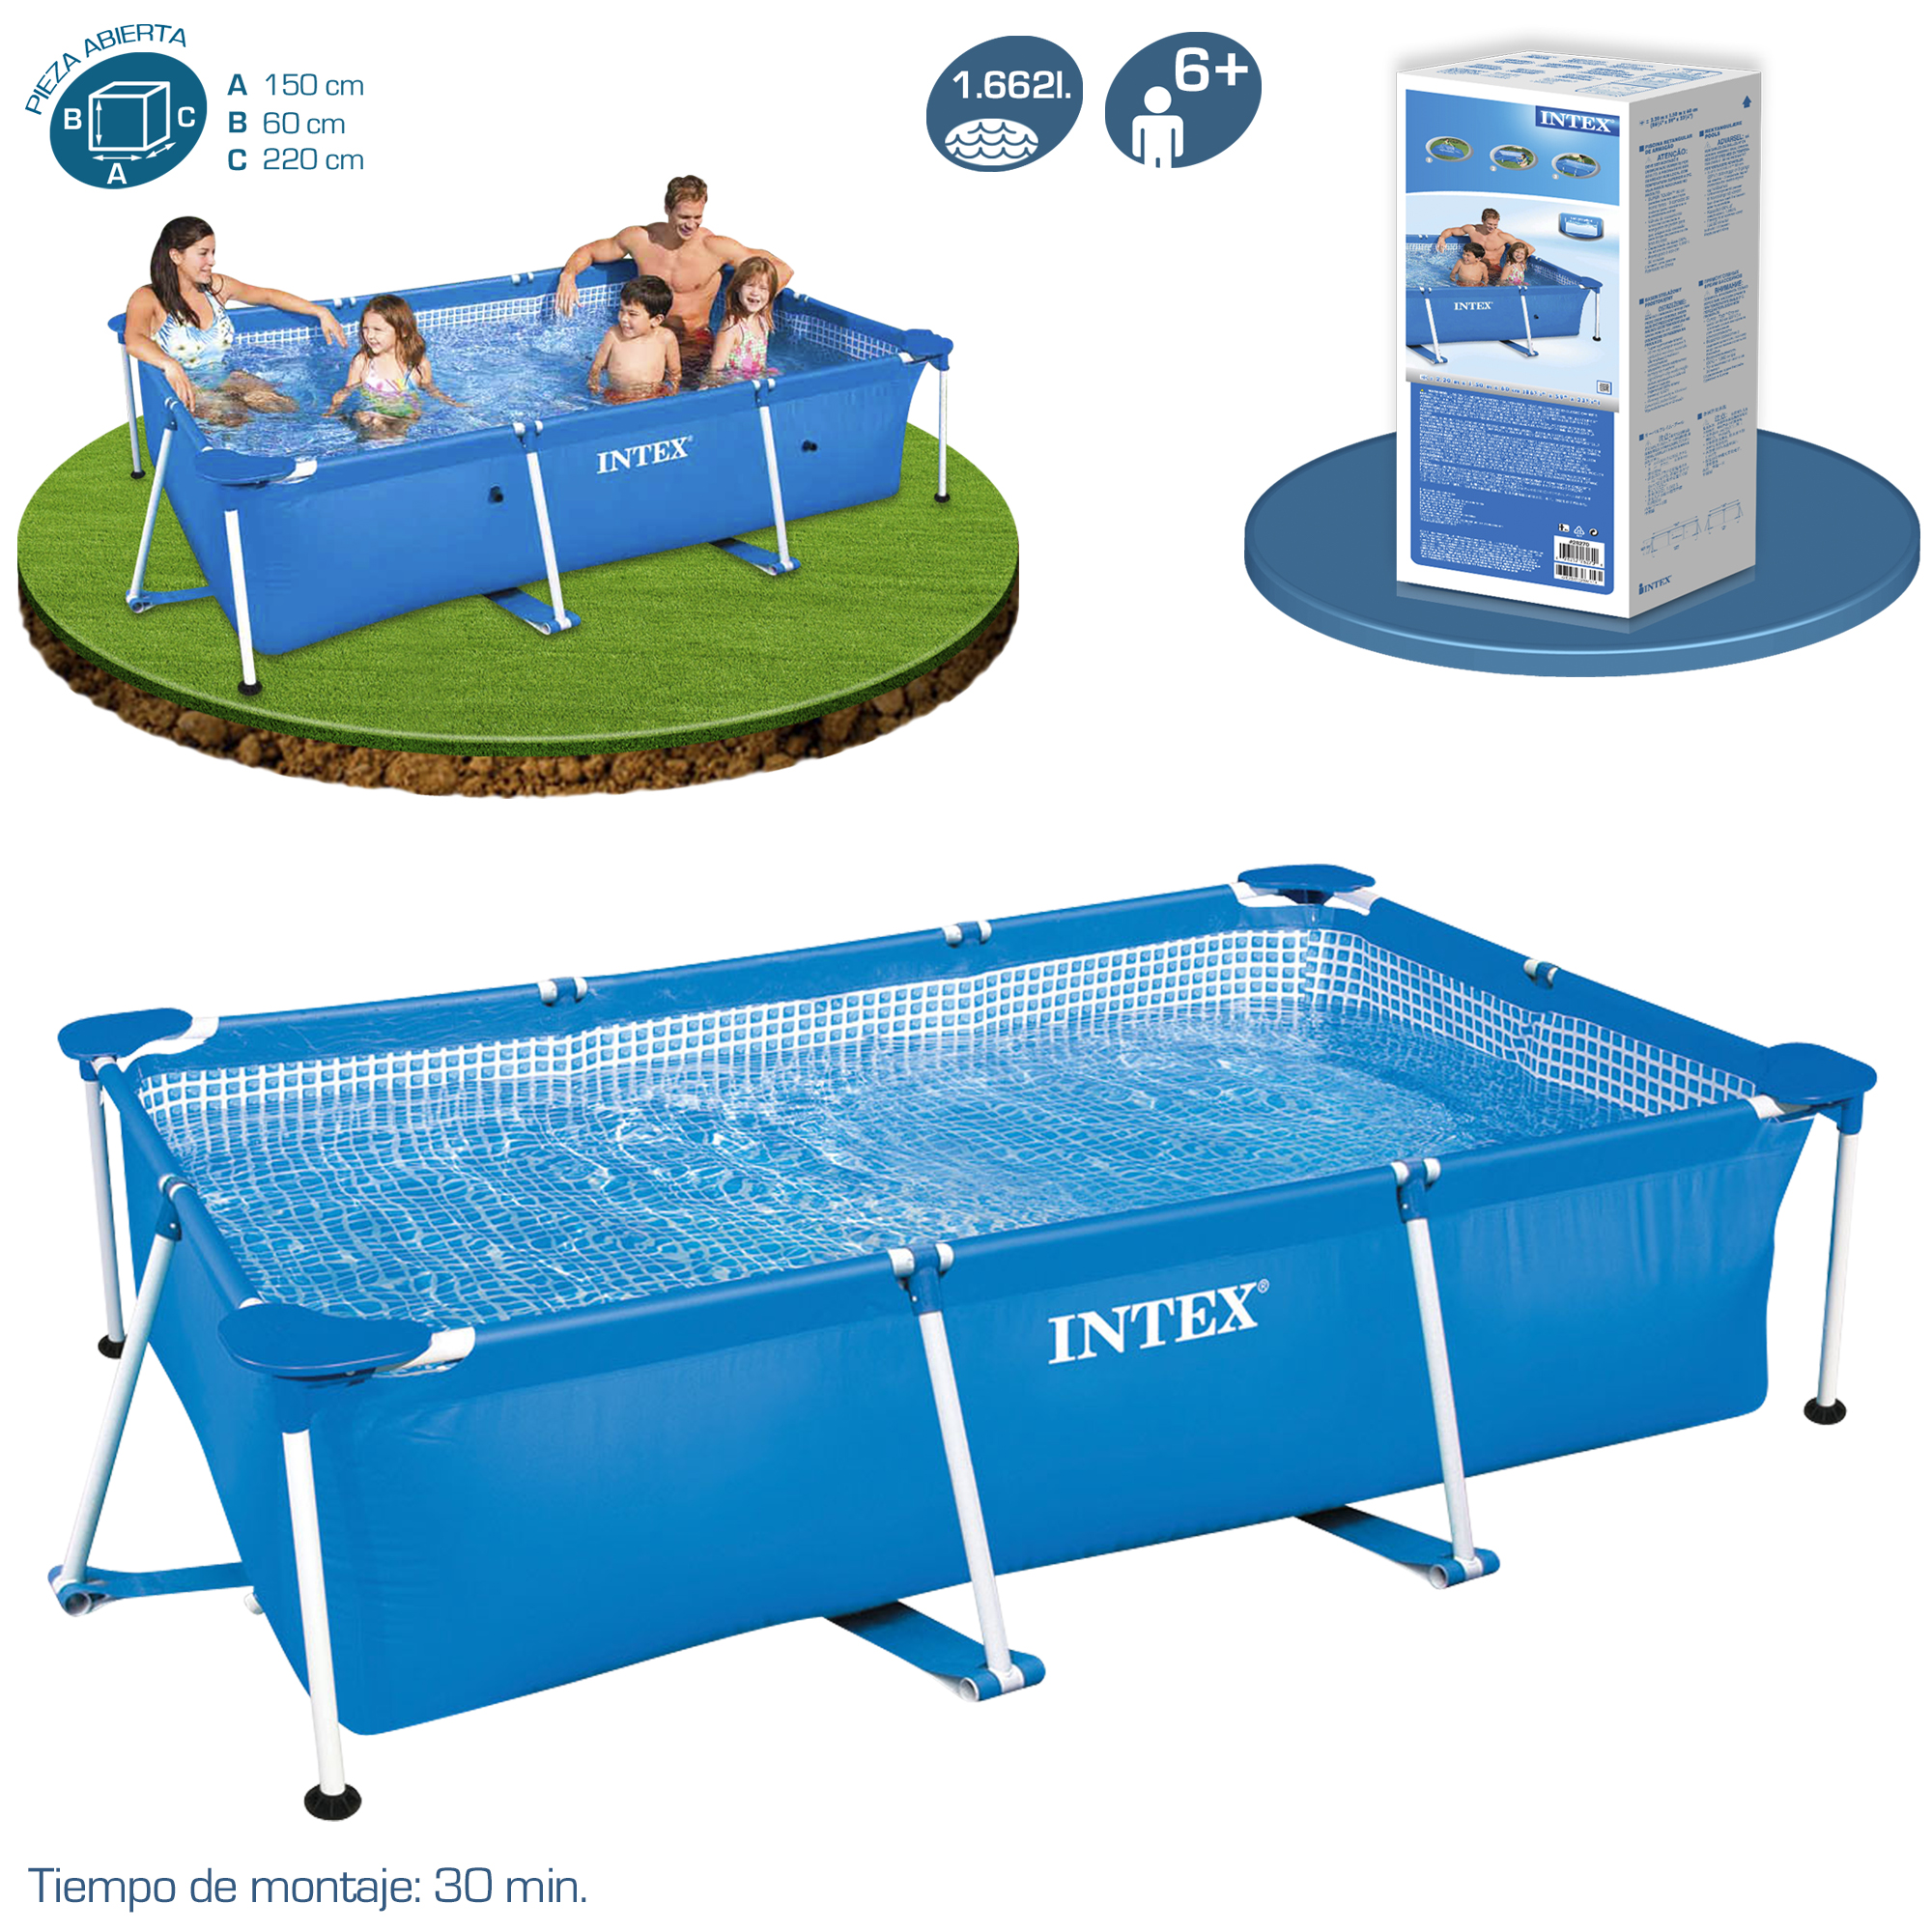 Piscina intex small rectangular frame piscinas desmontables for Piscinas de plastico precios carrefour